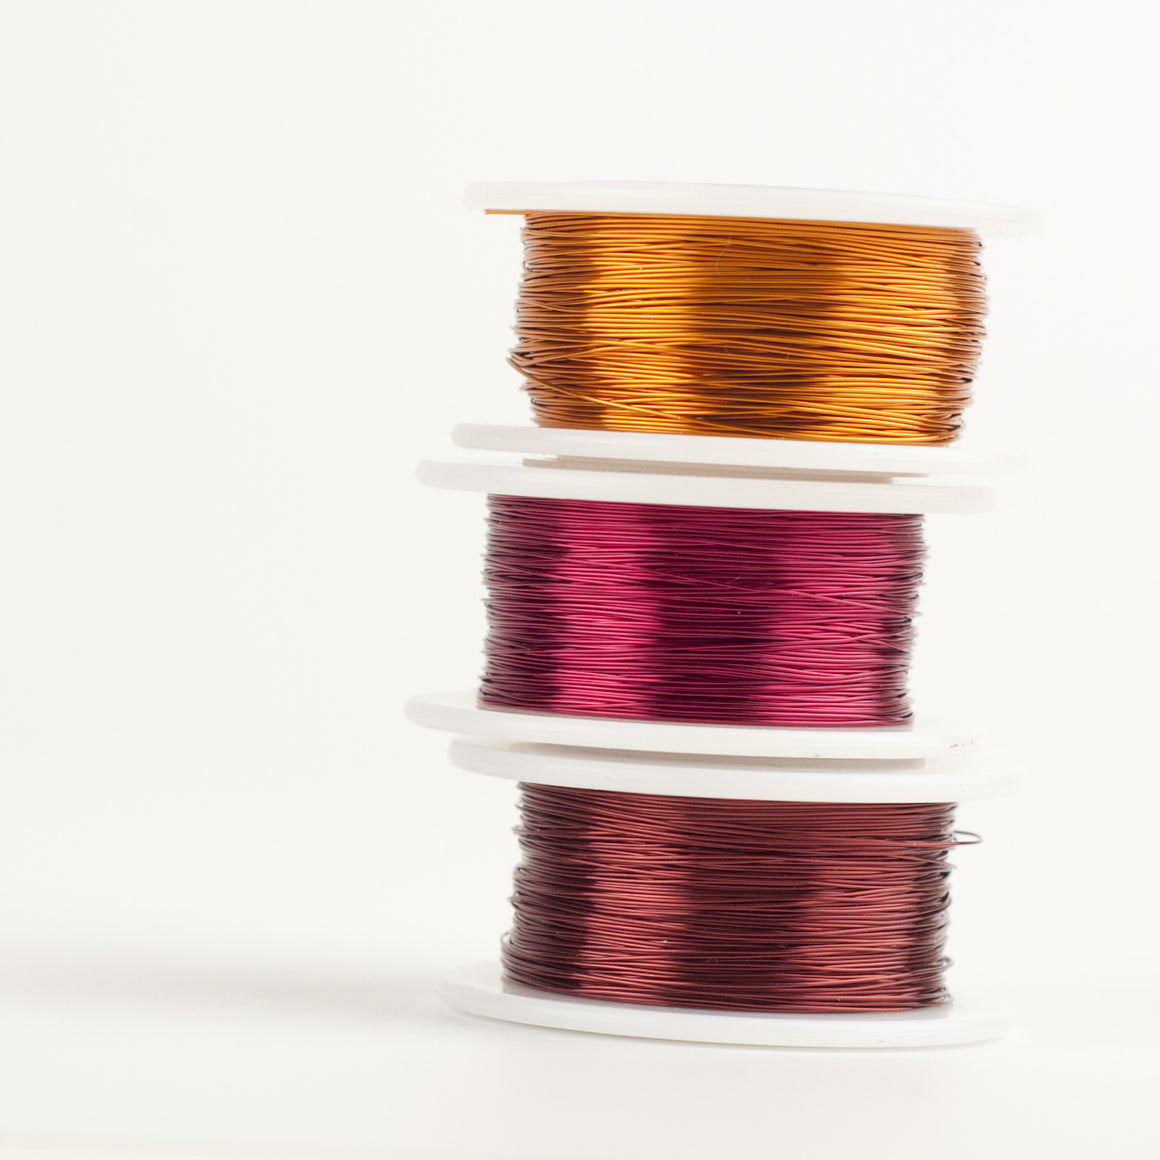 Craft Wire - SPicy colors combo - Extra long 3 spools - 120 feet each - Yooladesign